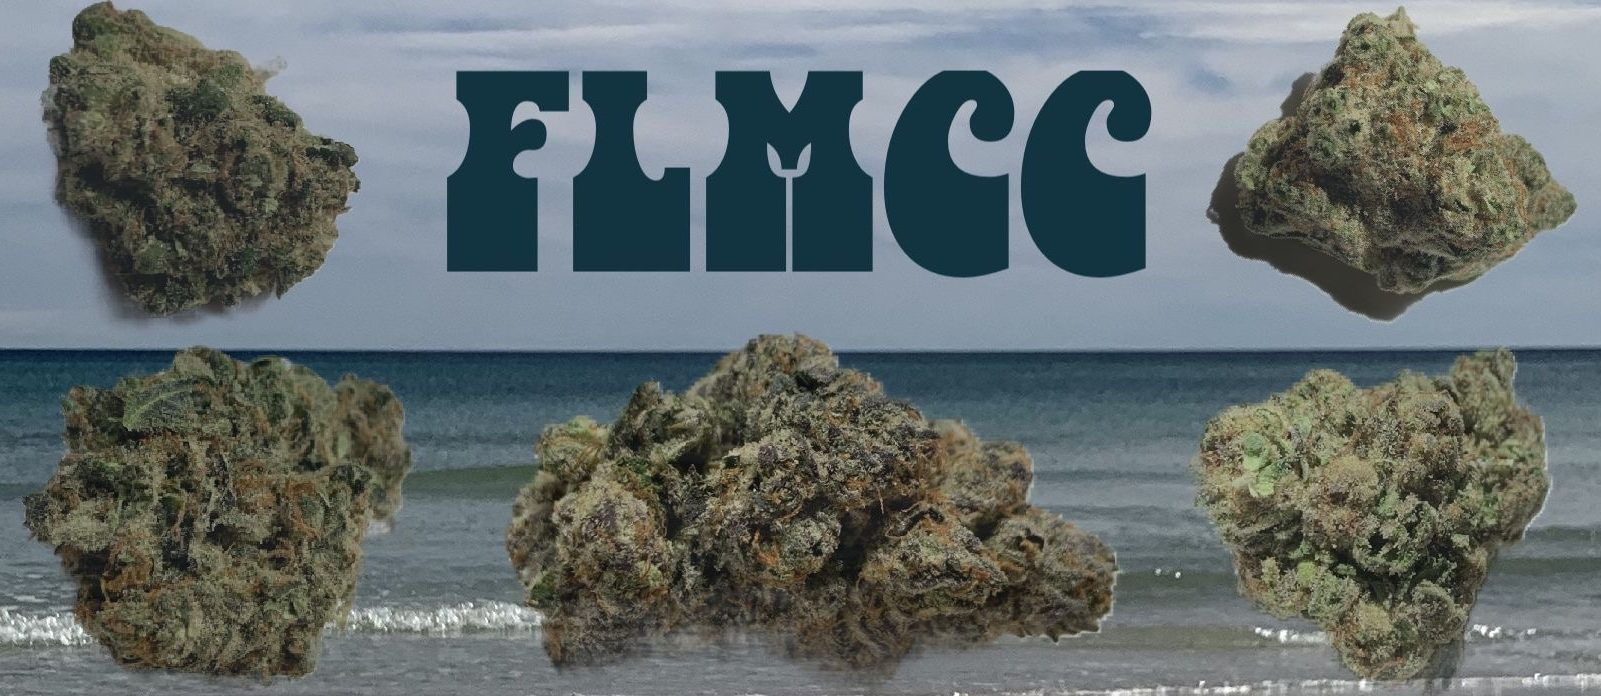 Florida Medical Cannabis Collective